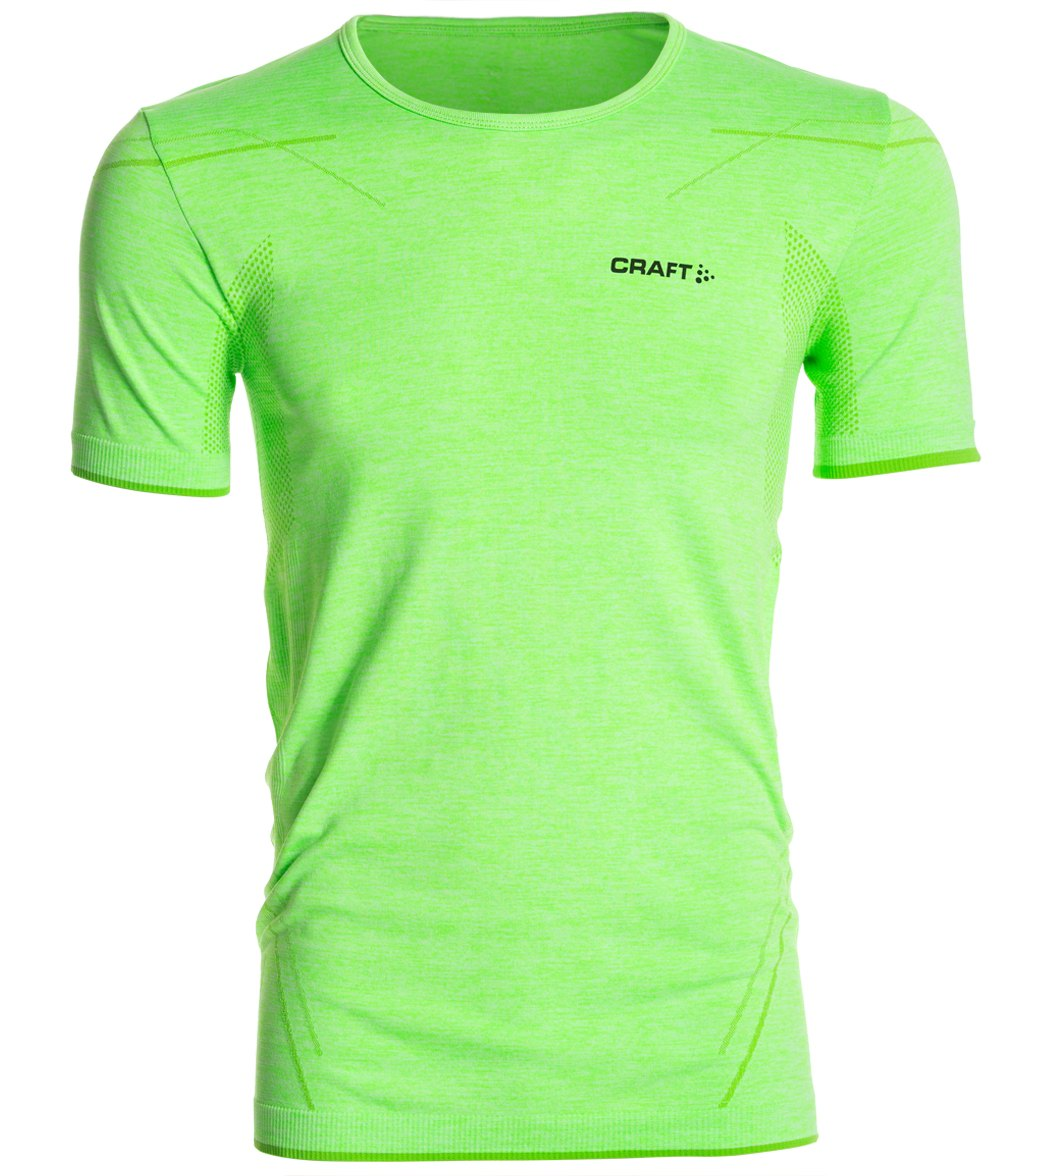 1c00daed341 Craft Men's Active Comfort RN SS Shirt at SwimOutlet.com - Free Shipping